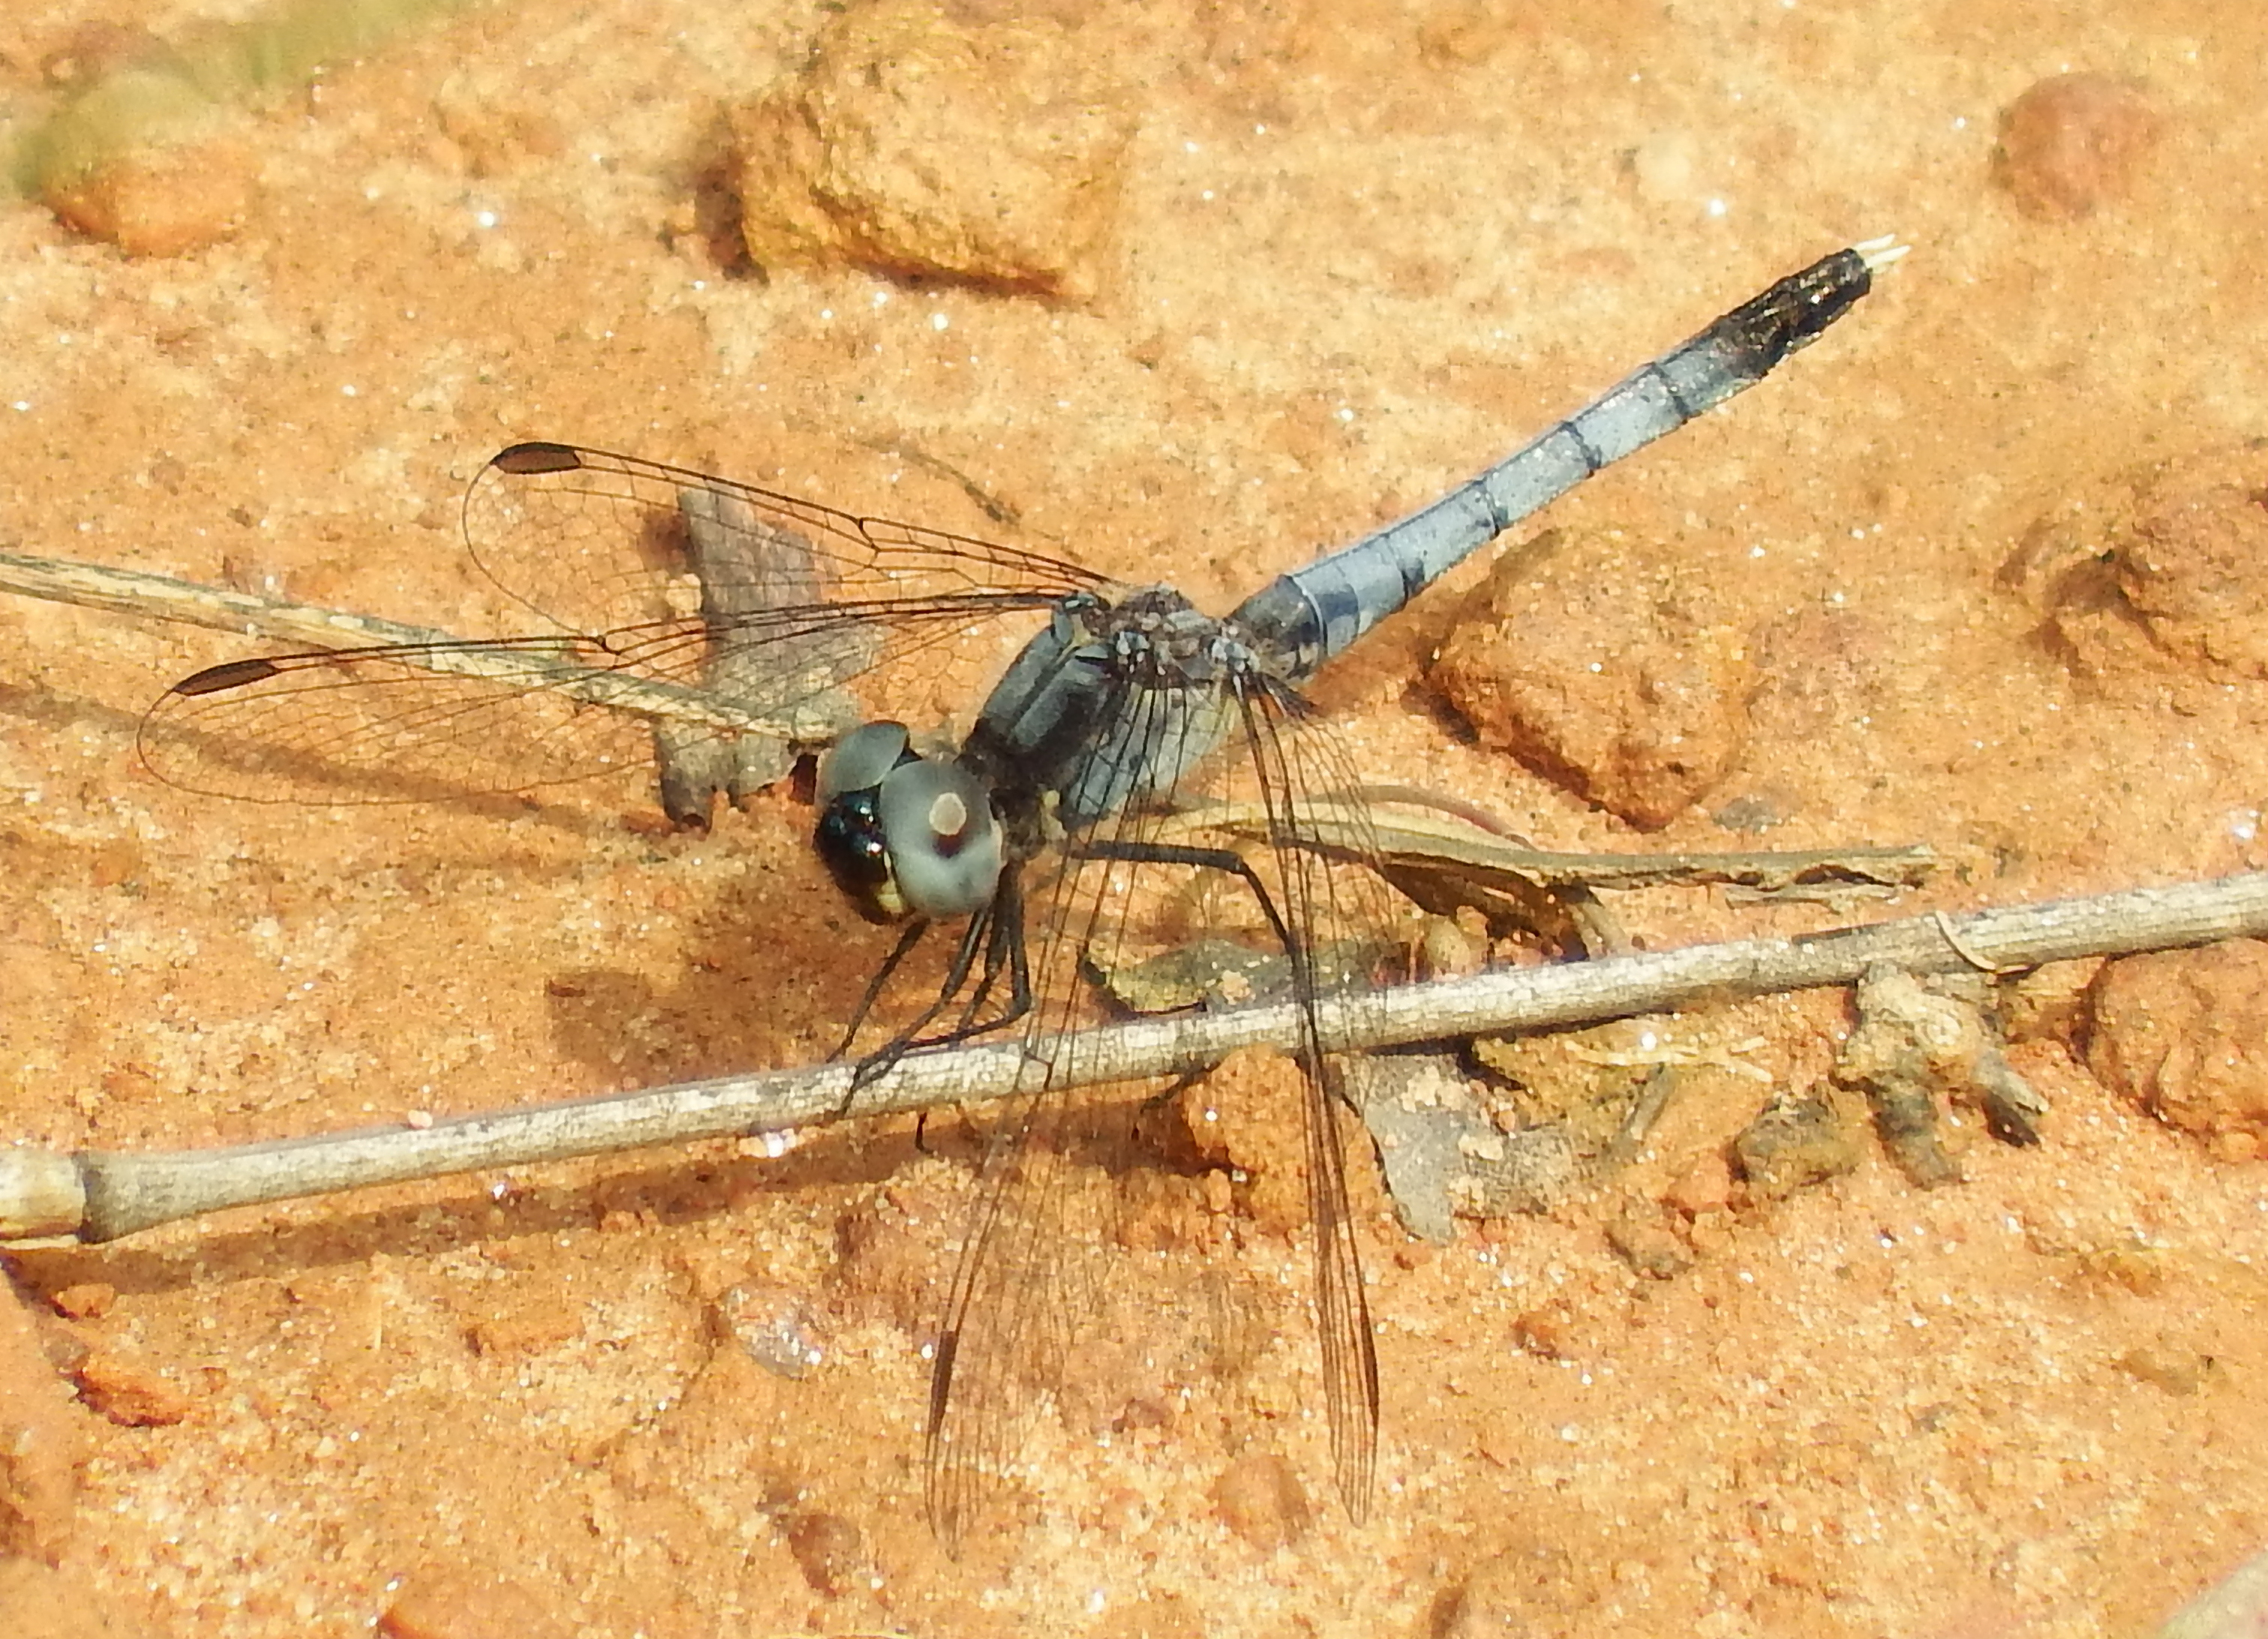 The Little Blue Dragonlet was discovered in the arid soil of Fairview Cemetery about five miles east of Fontana Dam on the North Carolina side of the Smokies. Photo courtesy of Tom Howe of GRISLD.